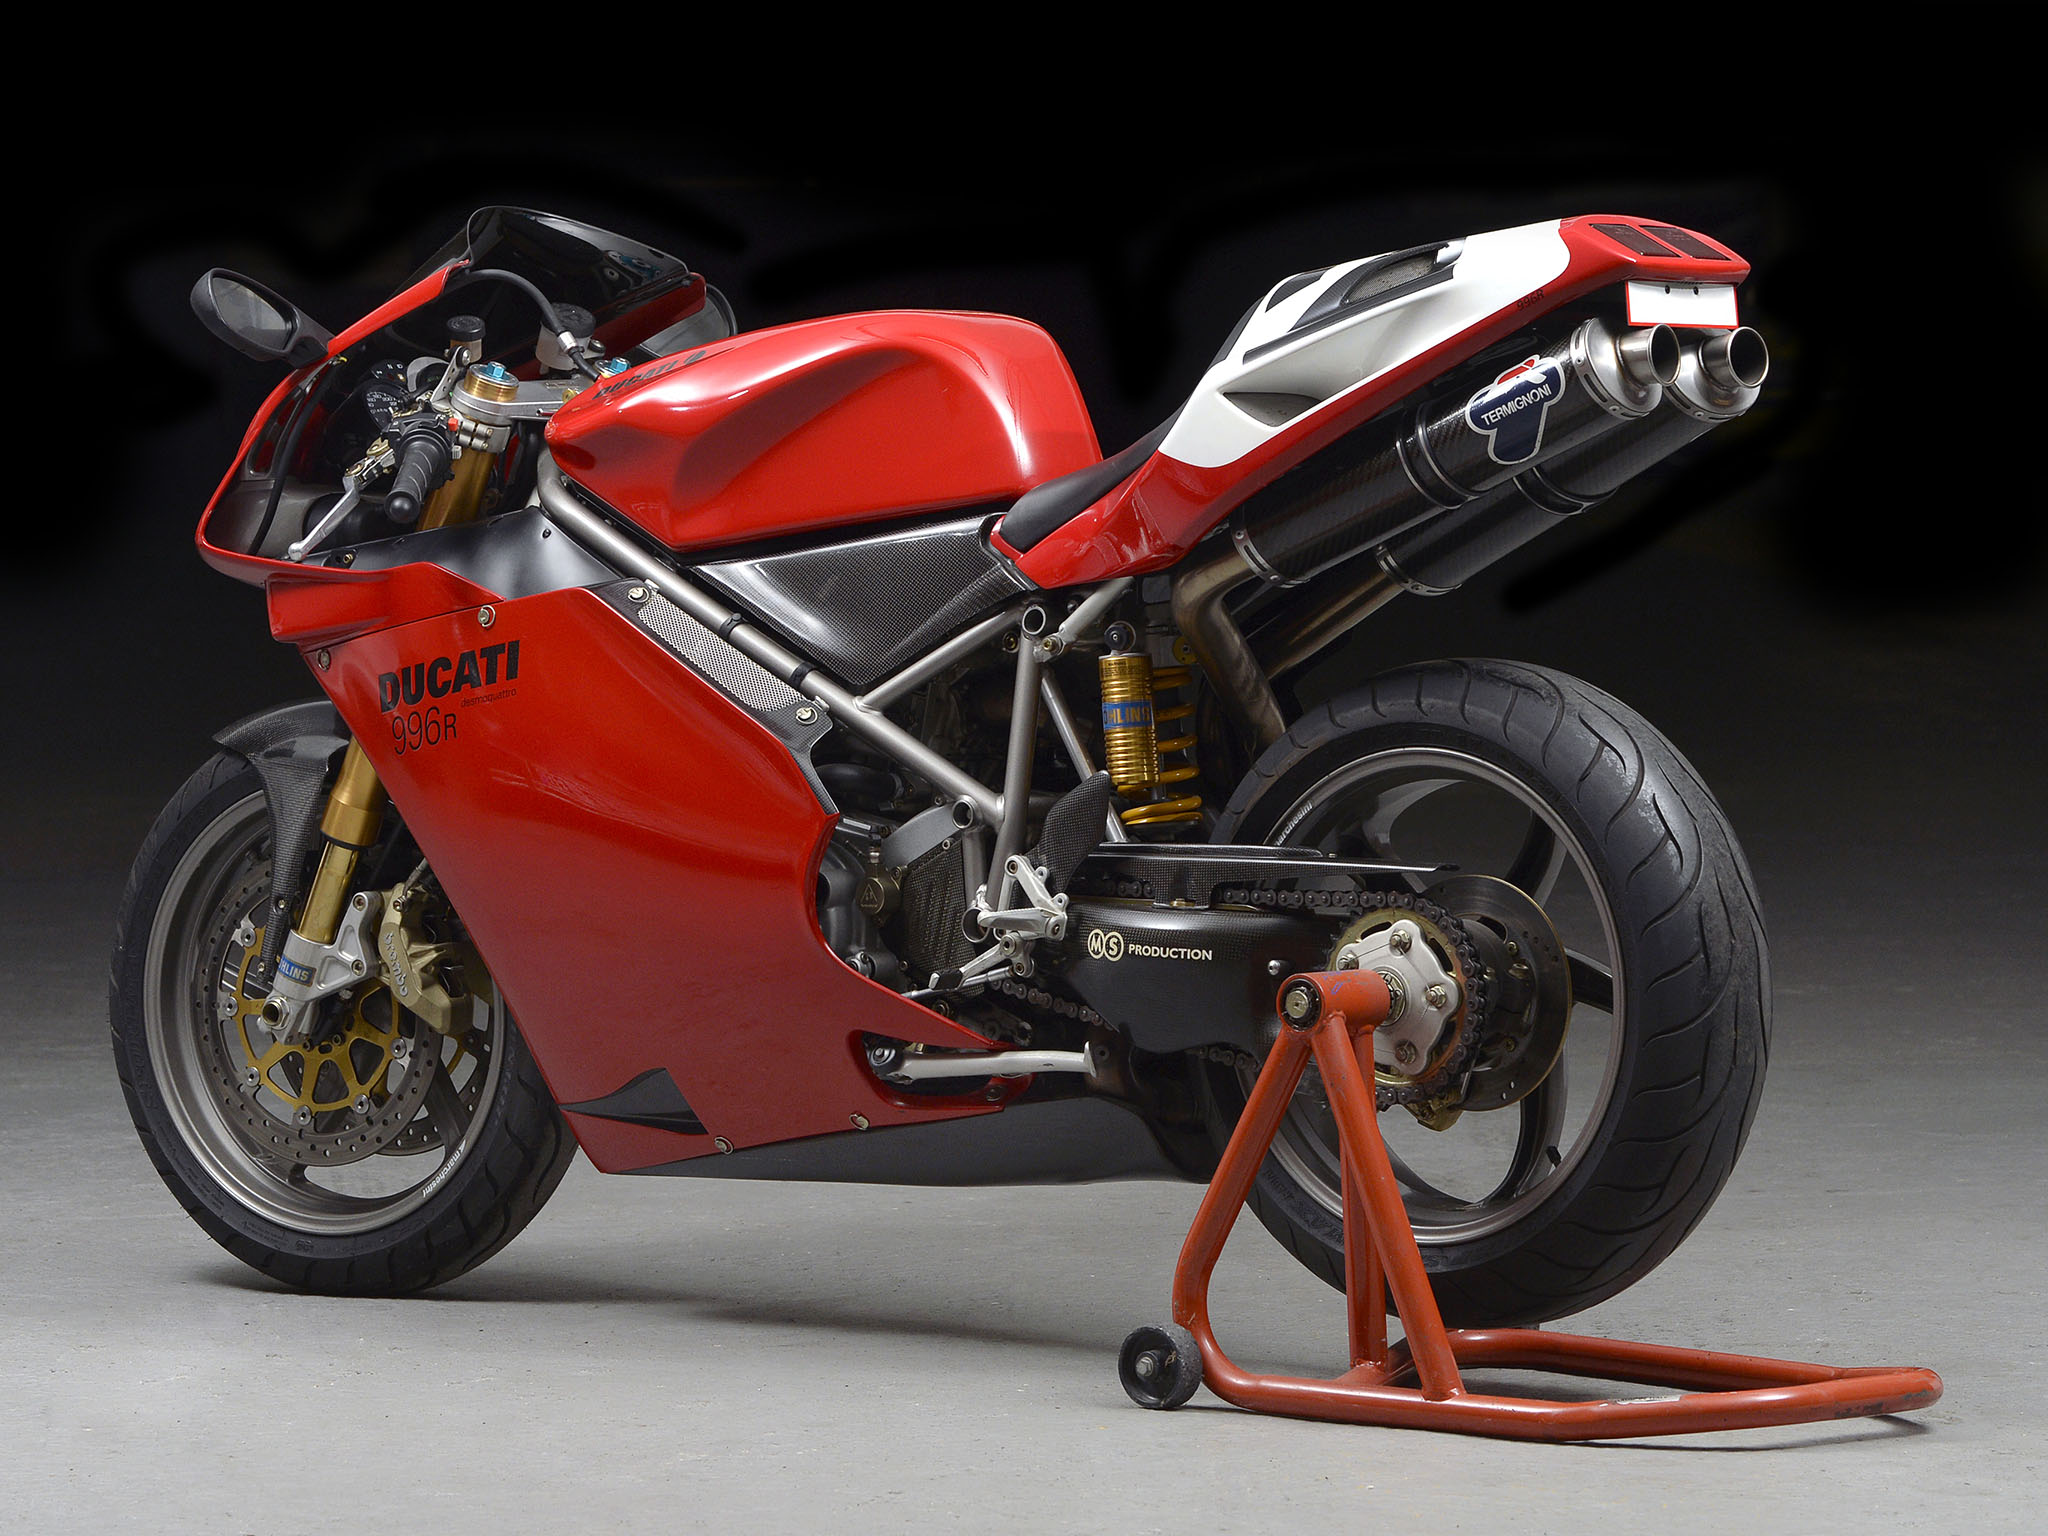 Ducati 996 R wallpapers #11056